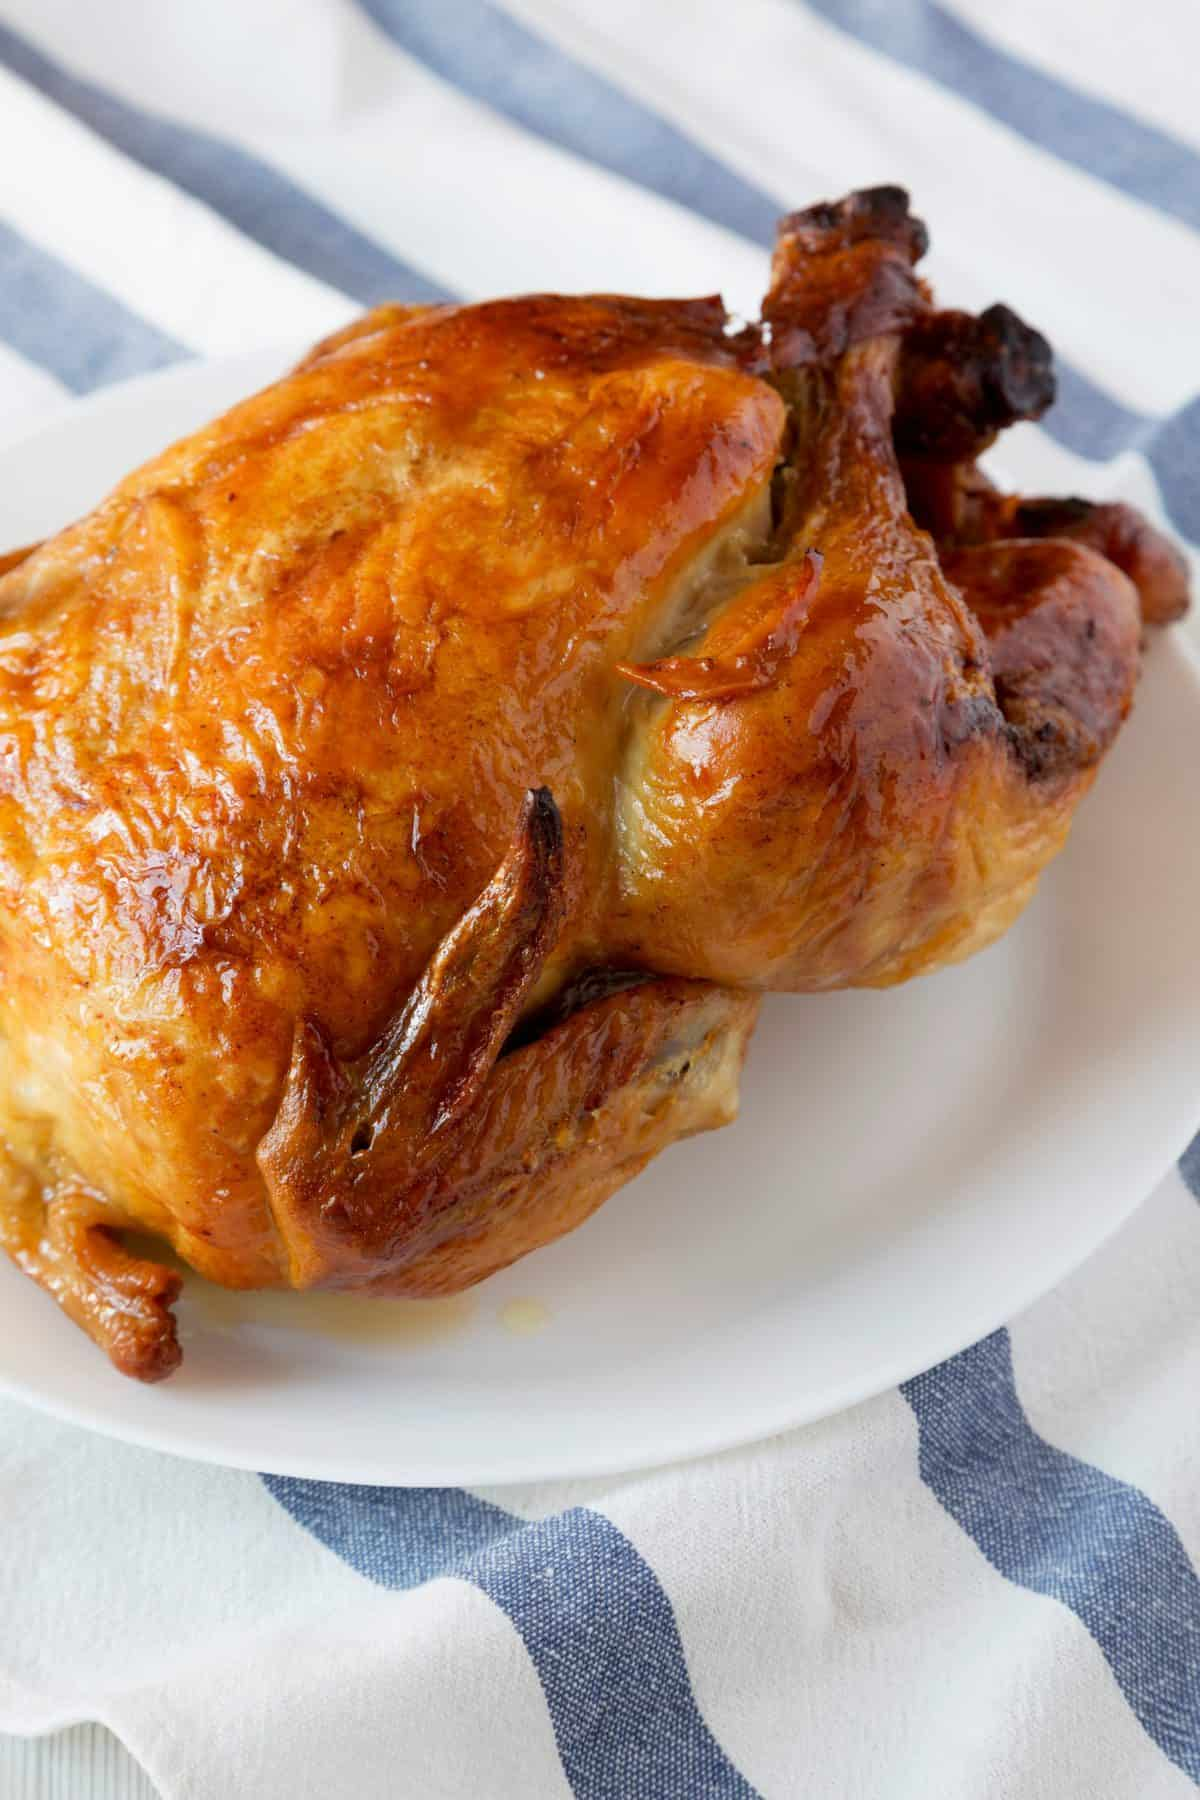 A rotisserie chicken sits on a white plate. The plate sits on a blue and white striped cloth.